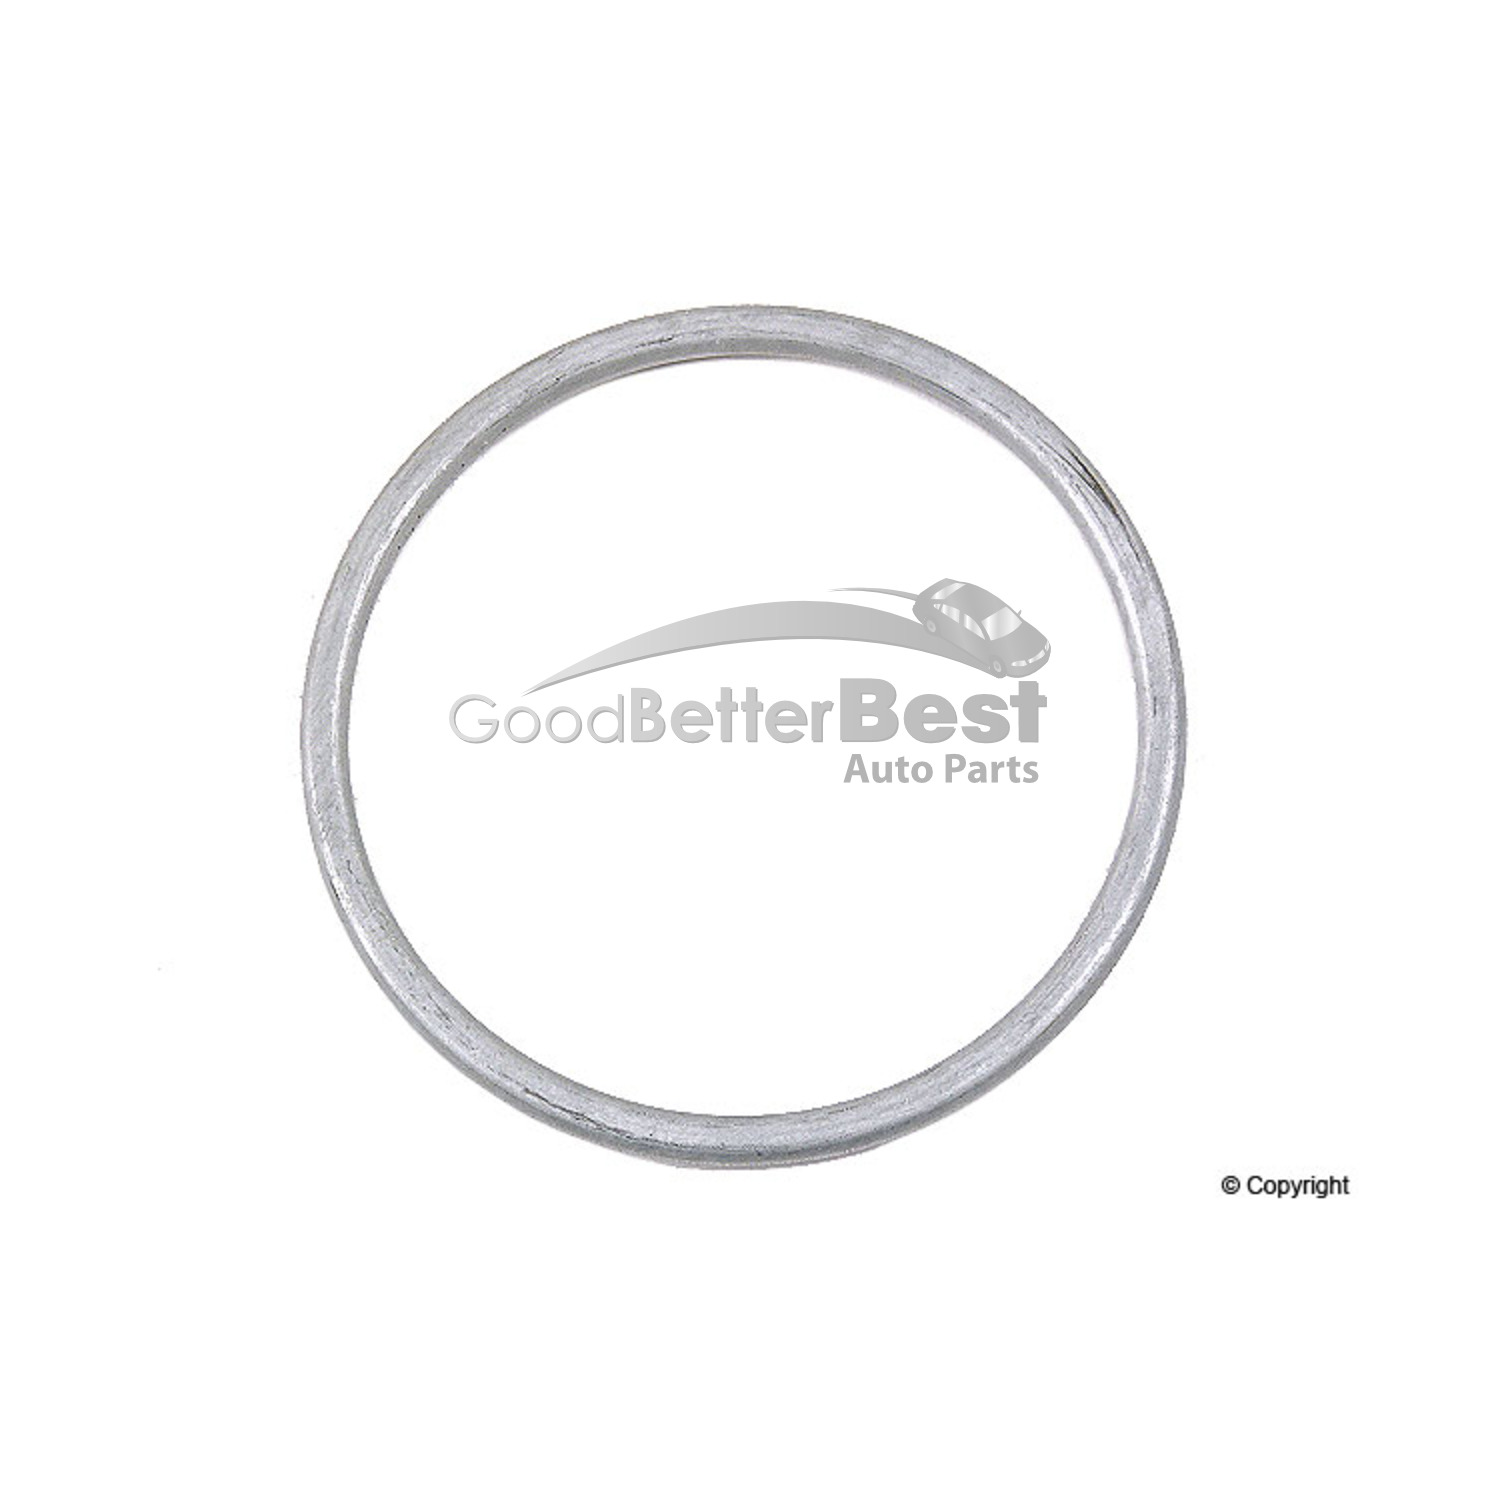 One New Genuine Exhaust Seal Ring For